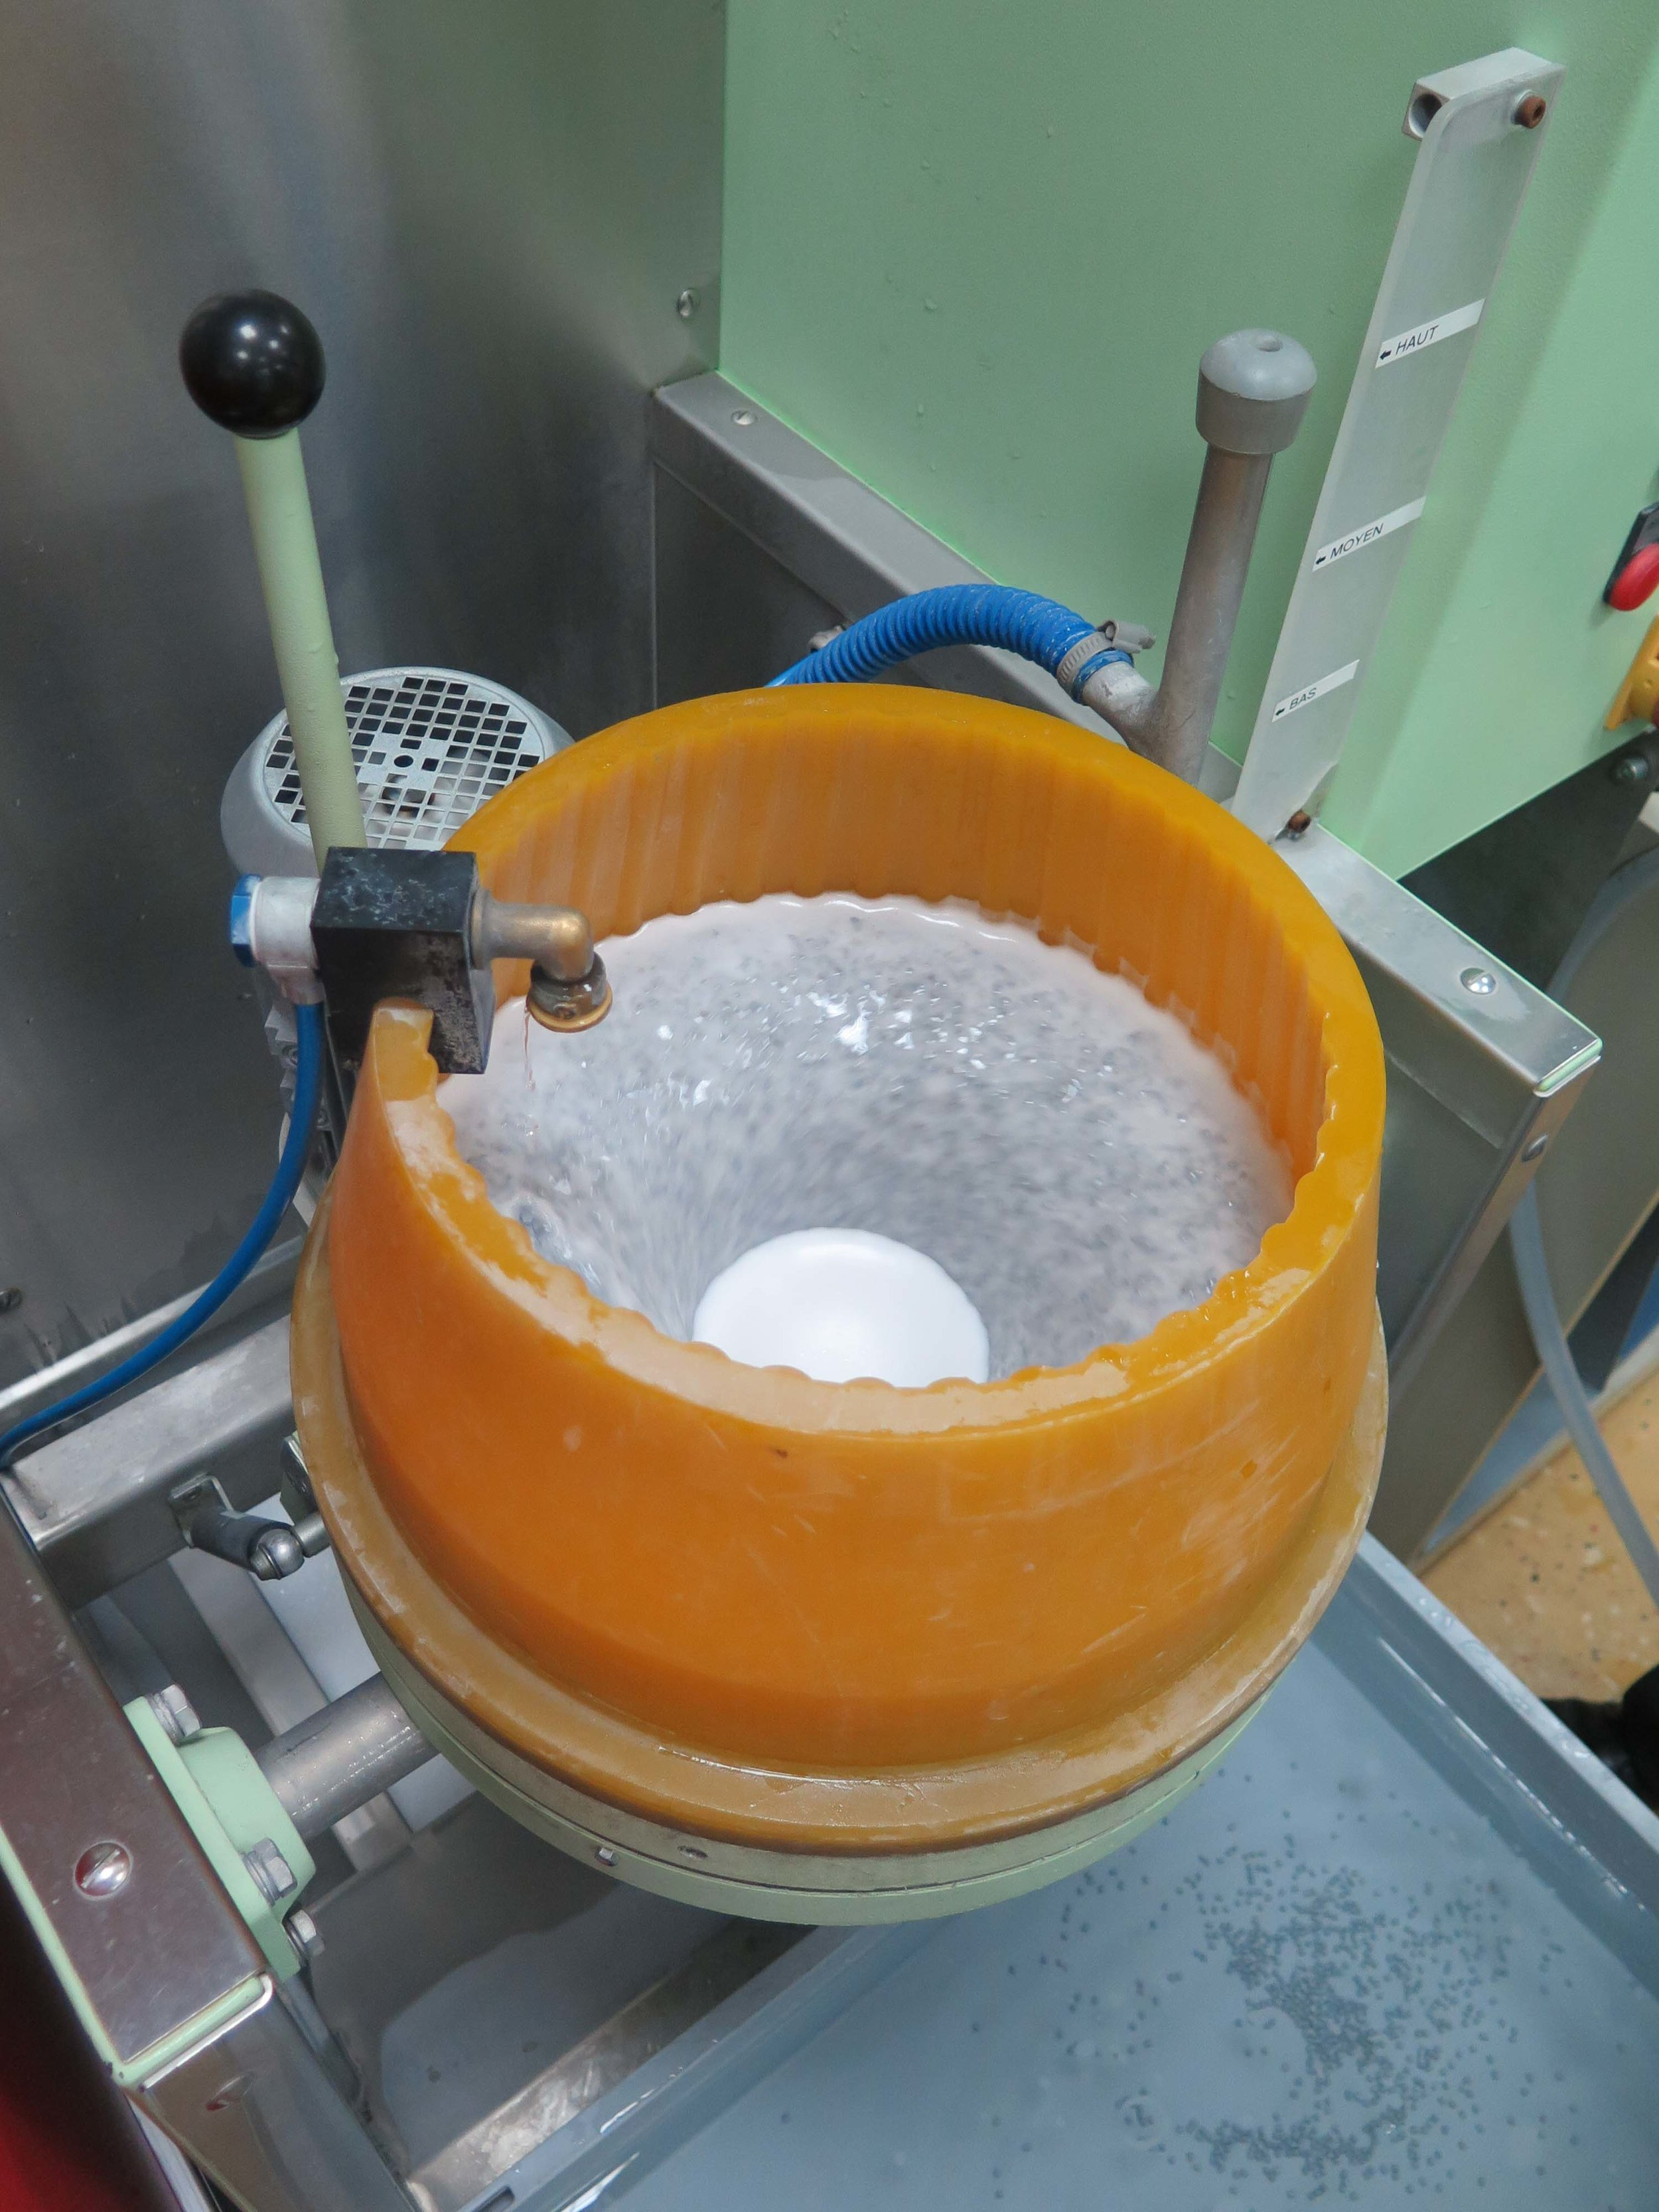 The tumbler turning the pieces to be treated with the ceramic beads in water